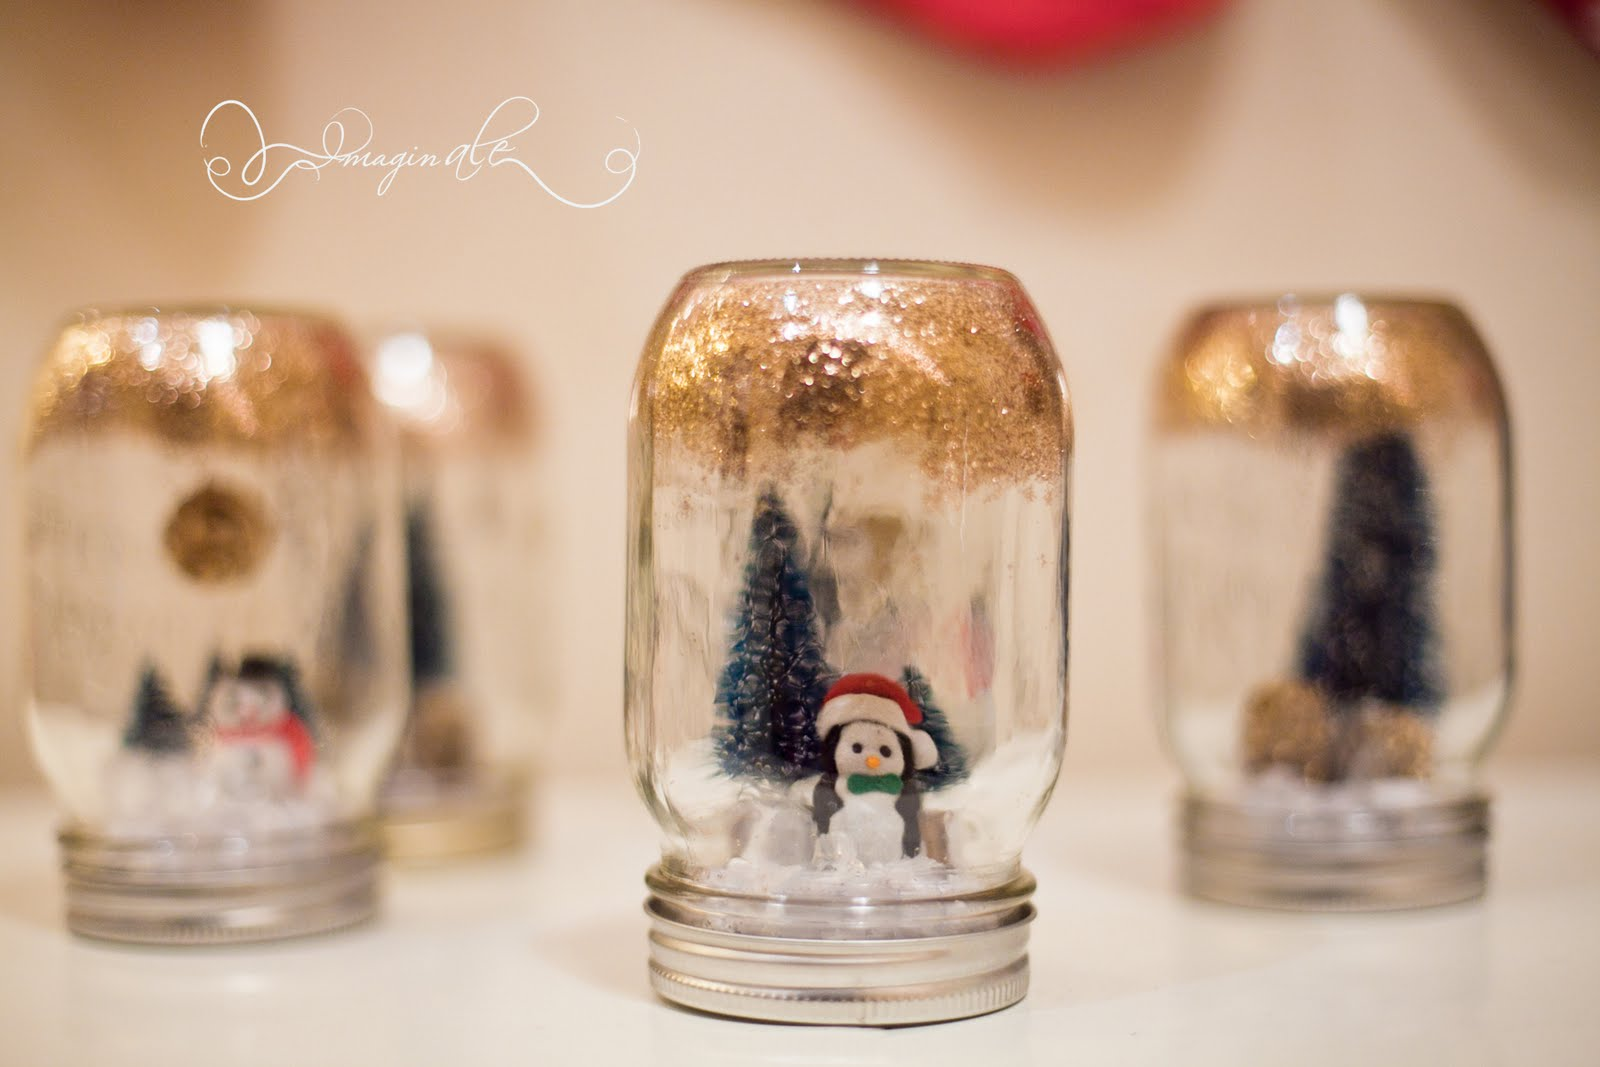 diy anthropologie mason jar snowglobe monday december 19 2011 im in texas at least thats what i figured when i saw all the boots and cowboy hats